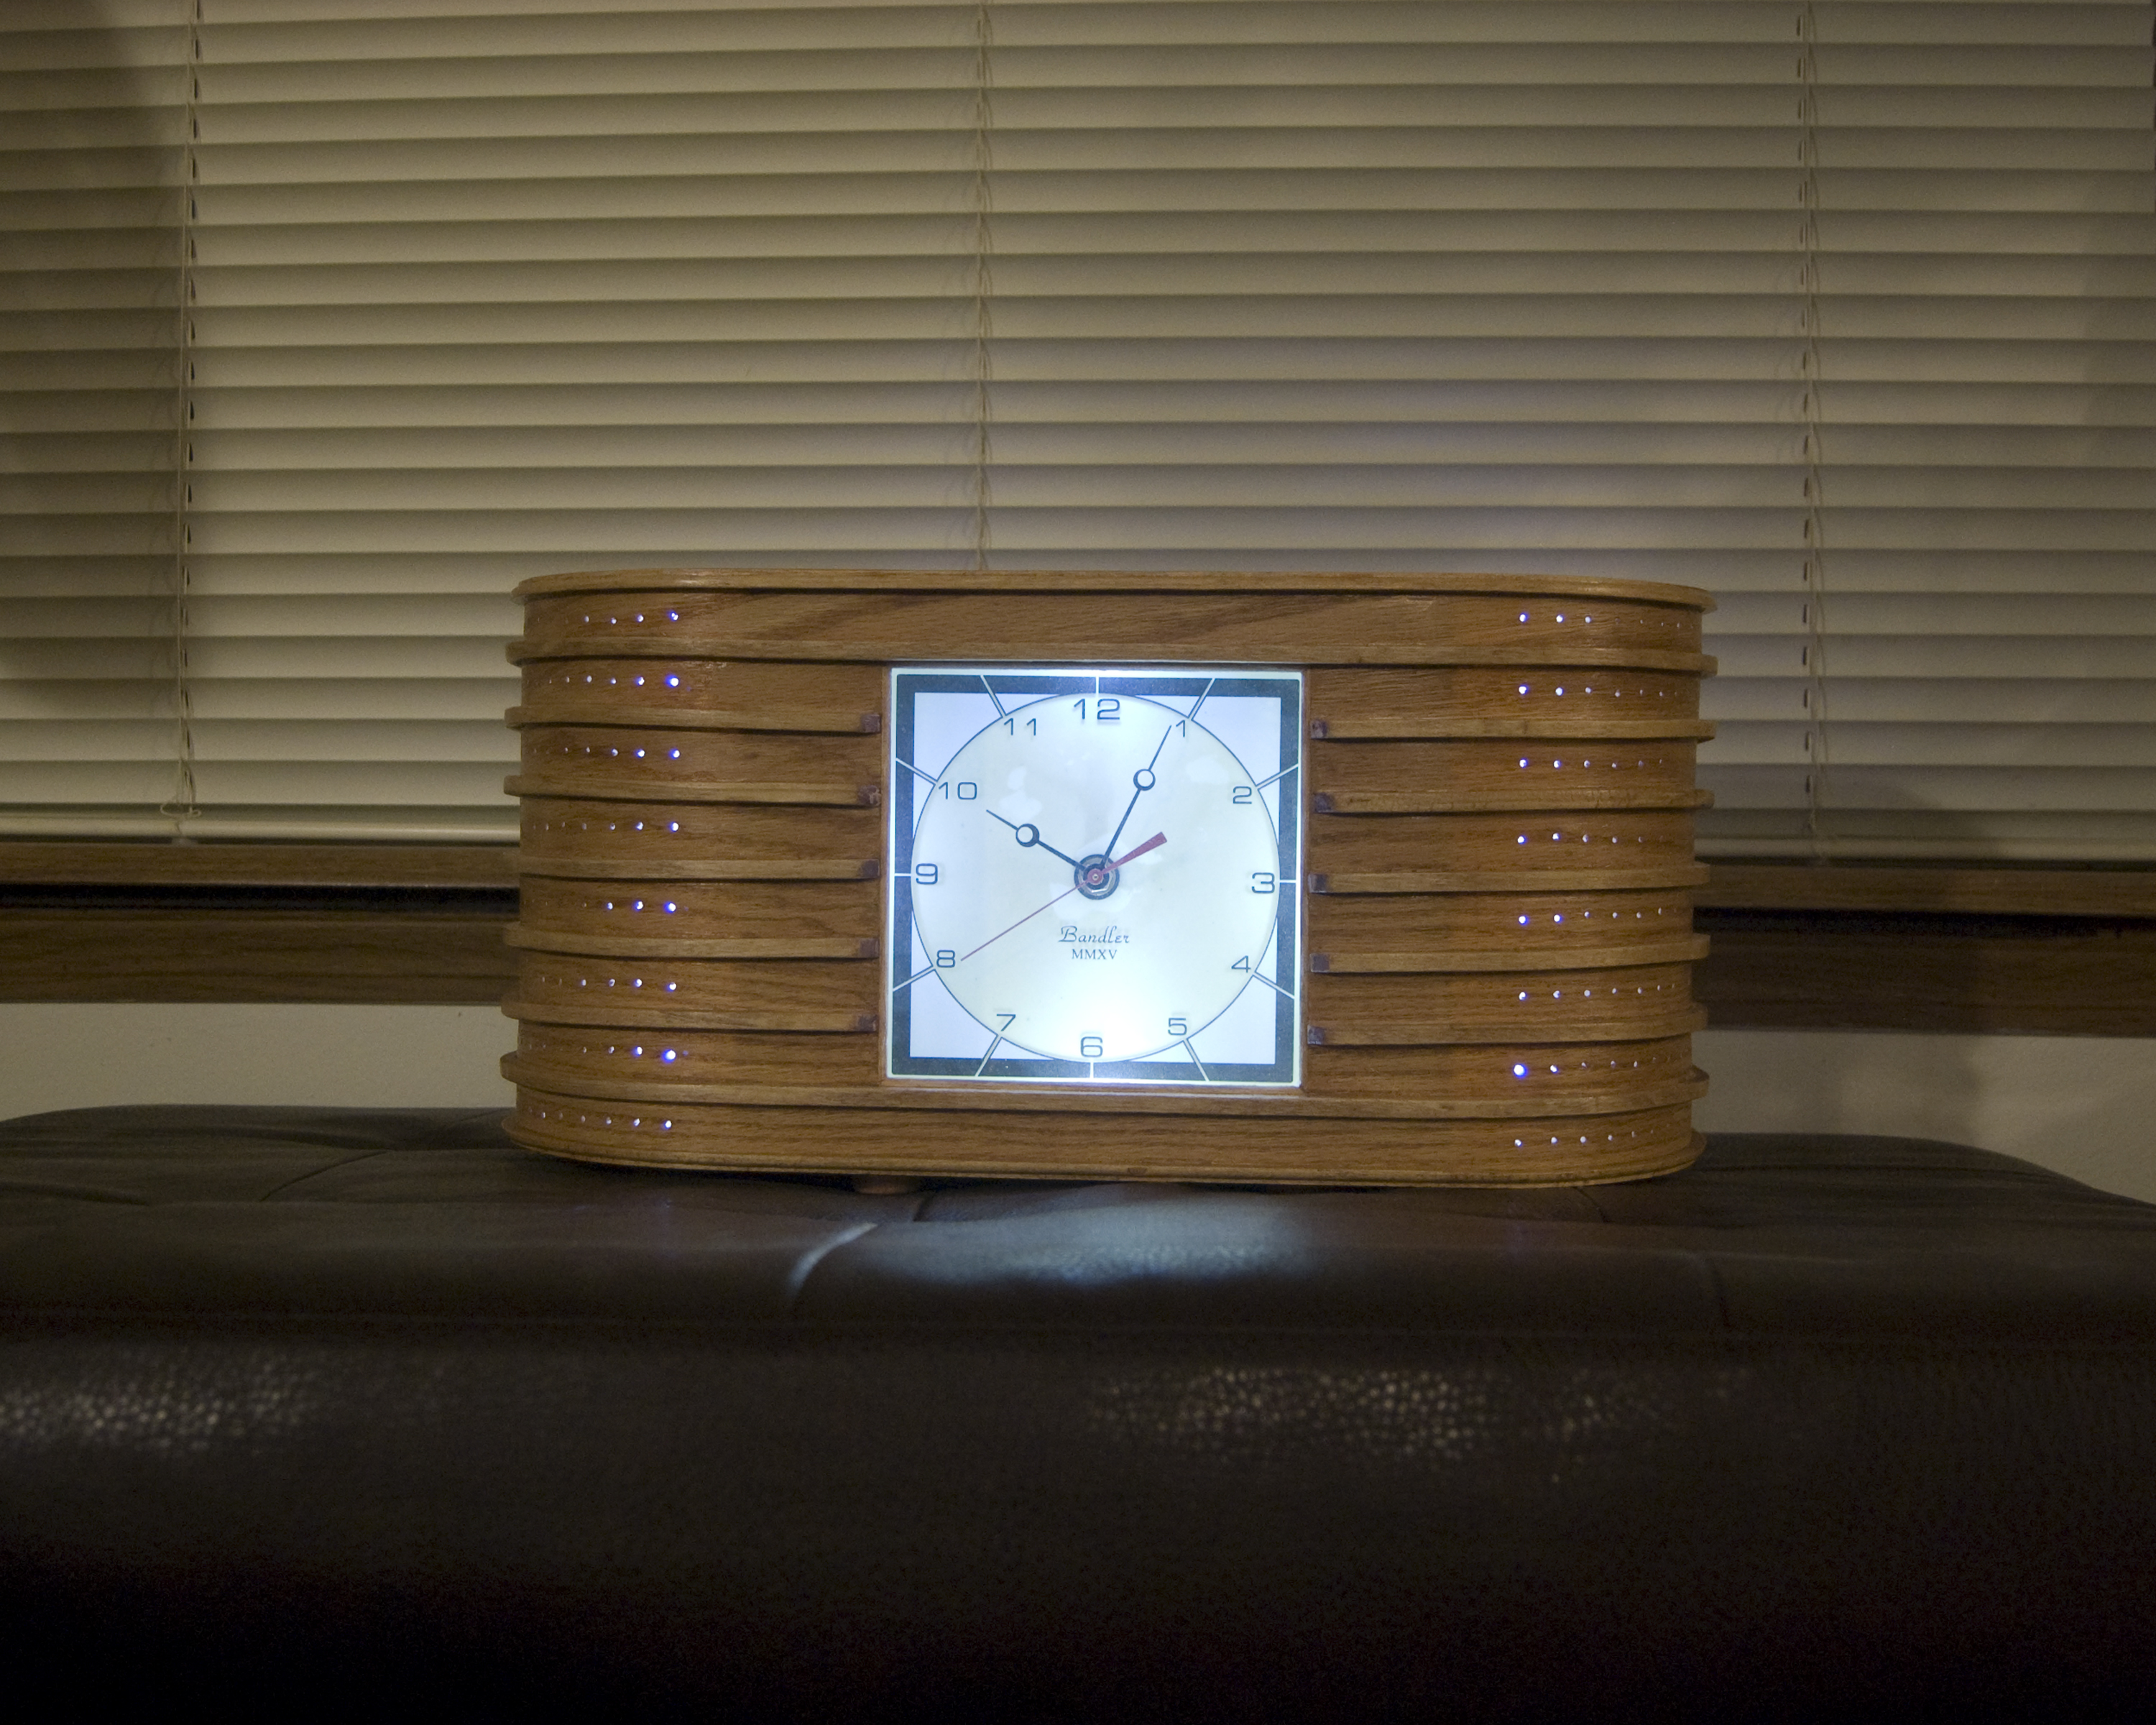 Deco Clock #2 - Copyright ©2016 David M. Bandler, All Rights Reserved.